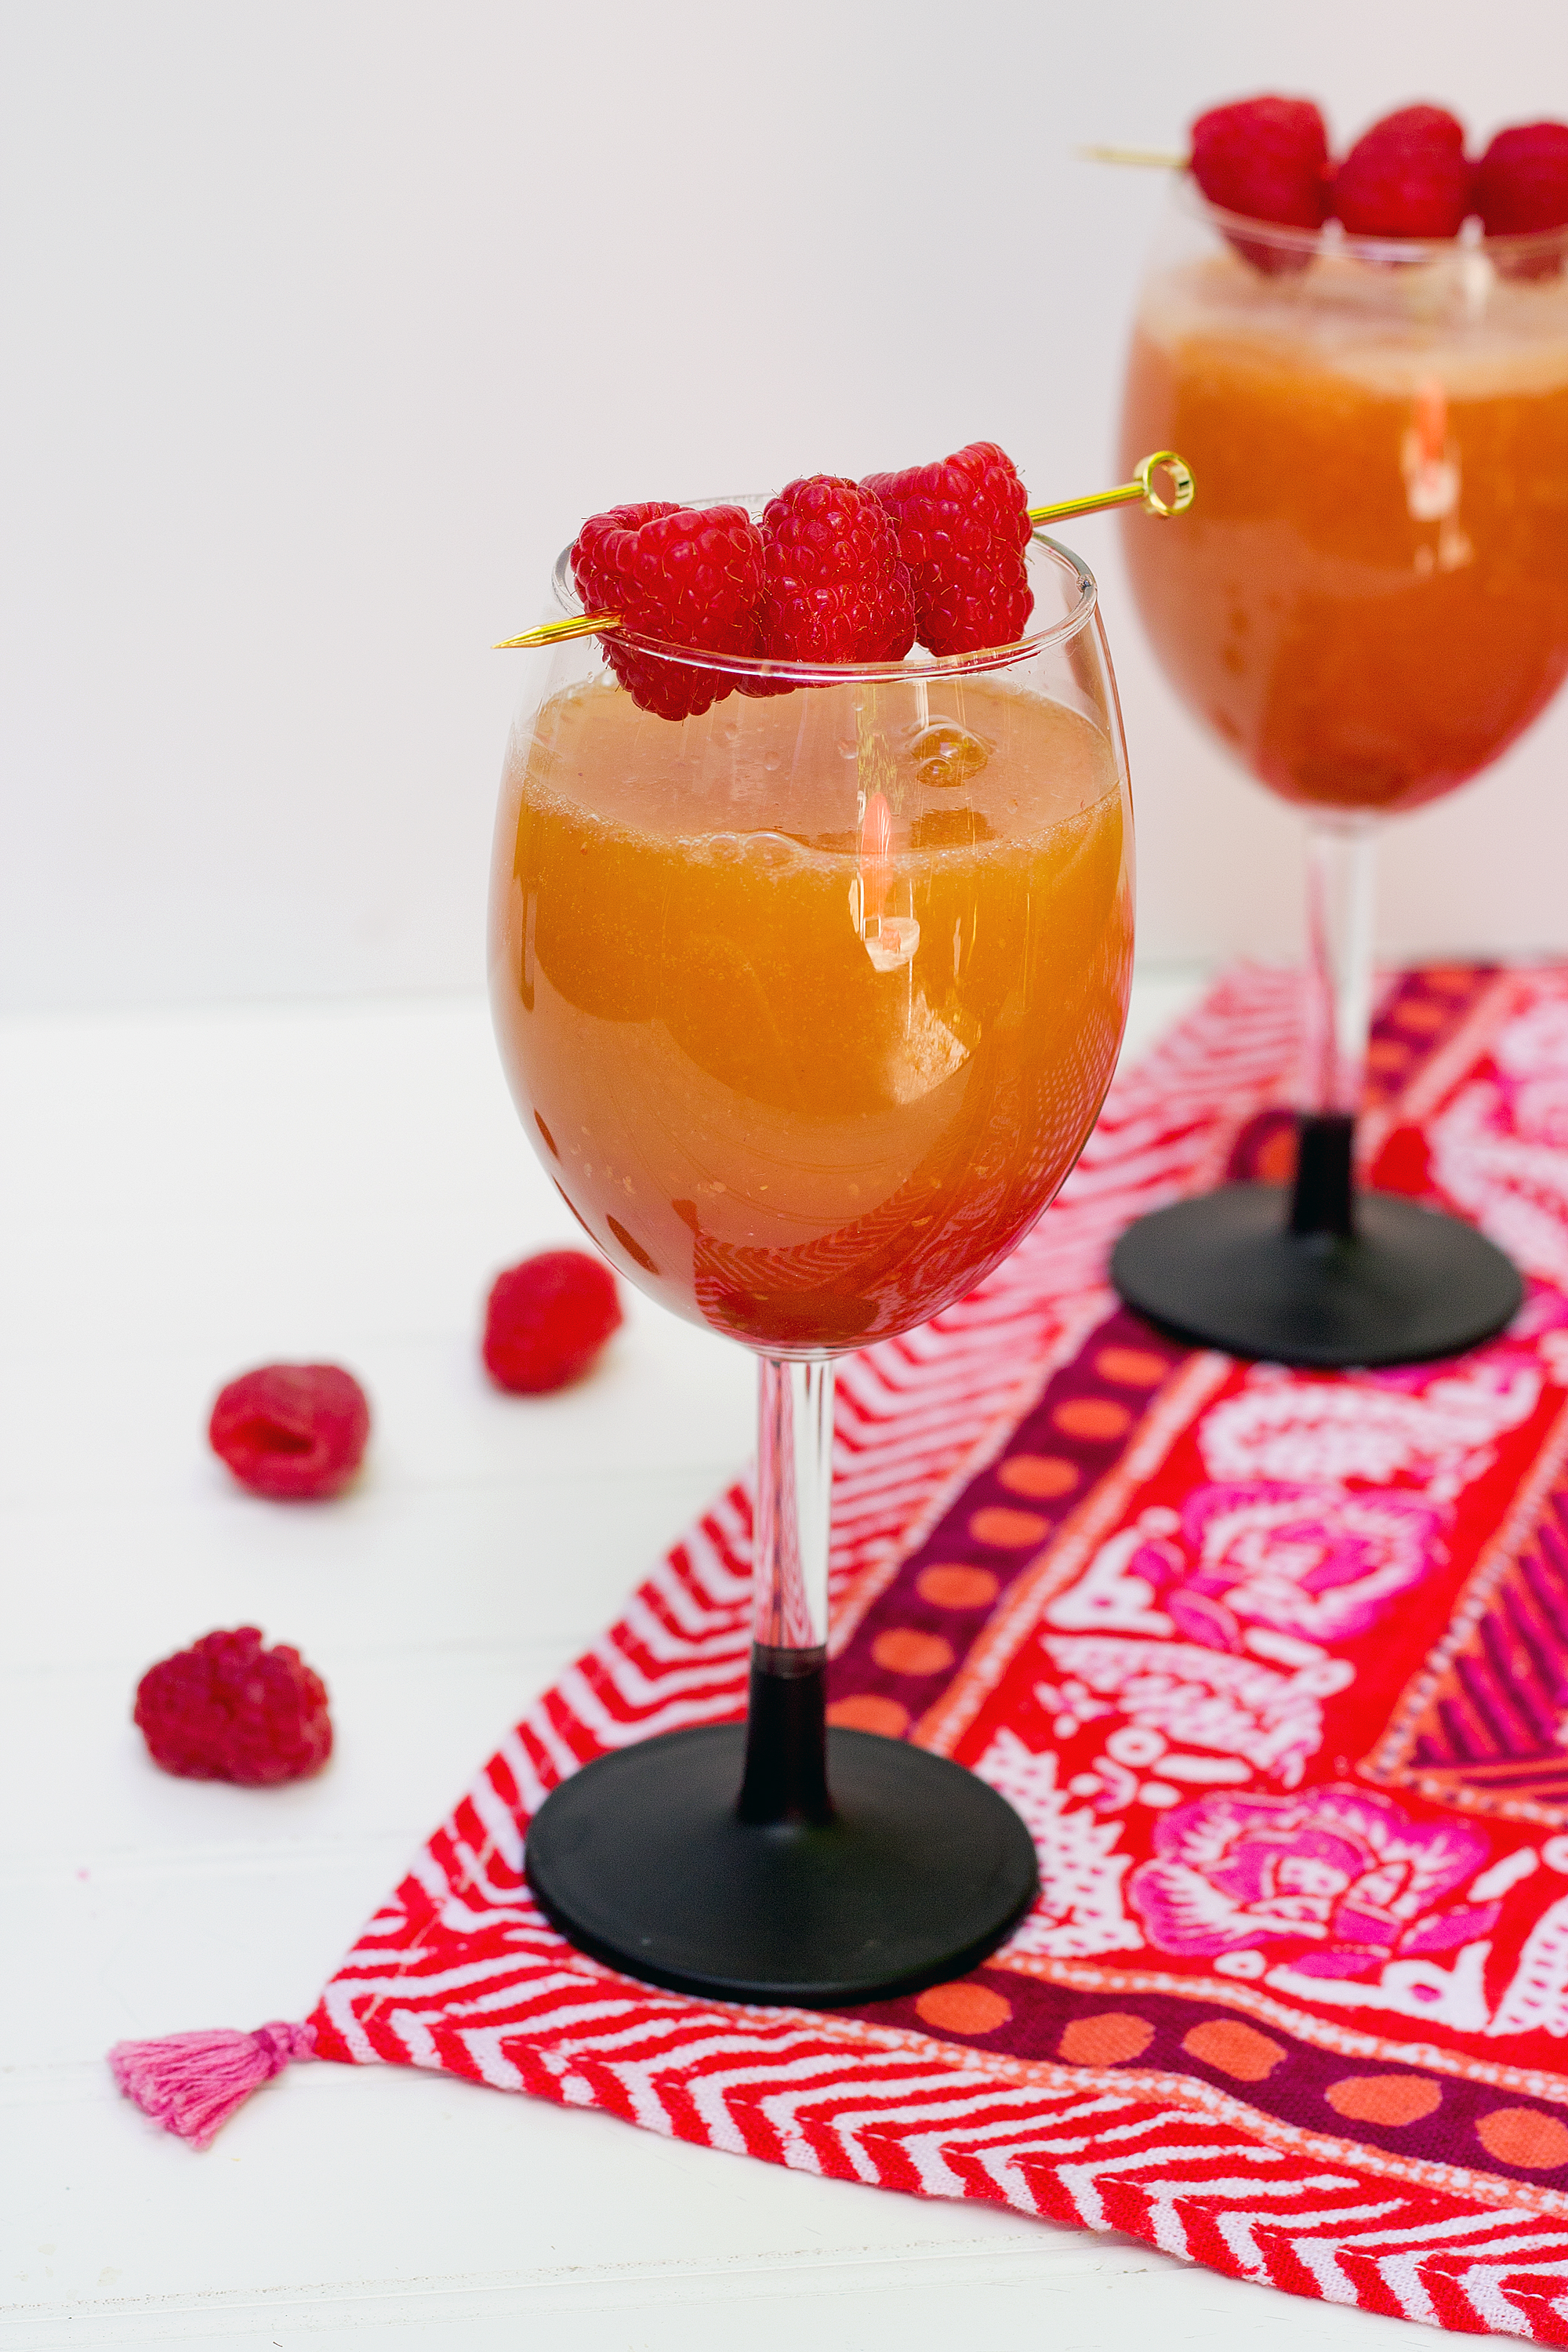 Get the recipe for this Raspberry and Peach Bellini from Unusuallylovely.com